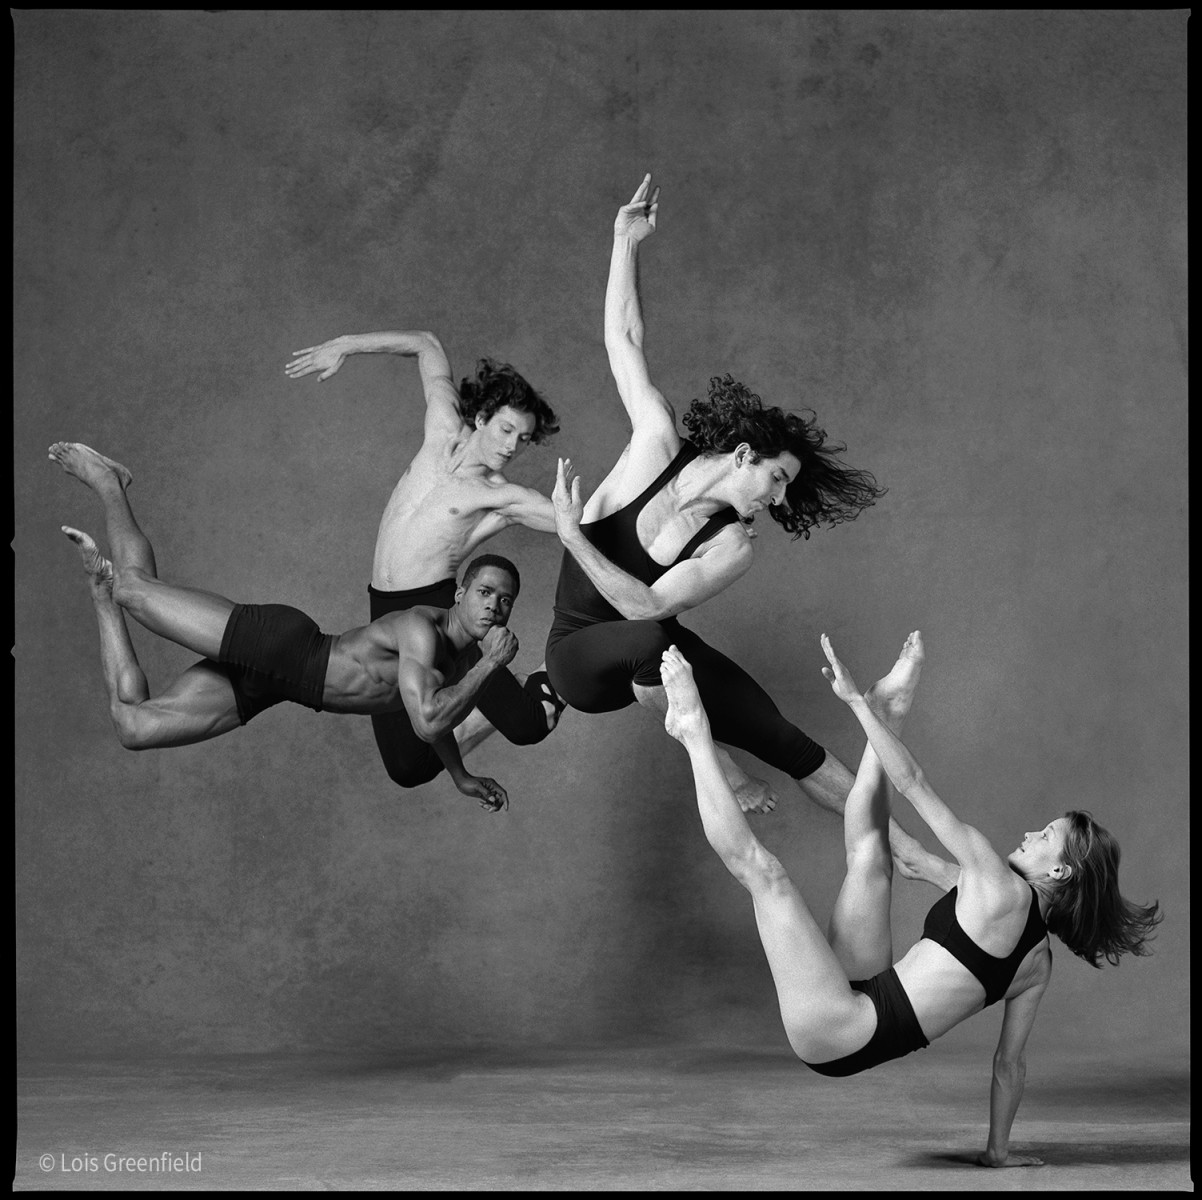 dancers appearing to float in mid air captured by genius photographer Lois Greenfield